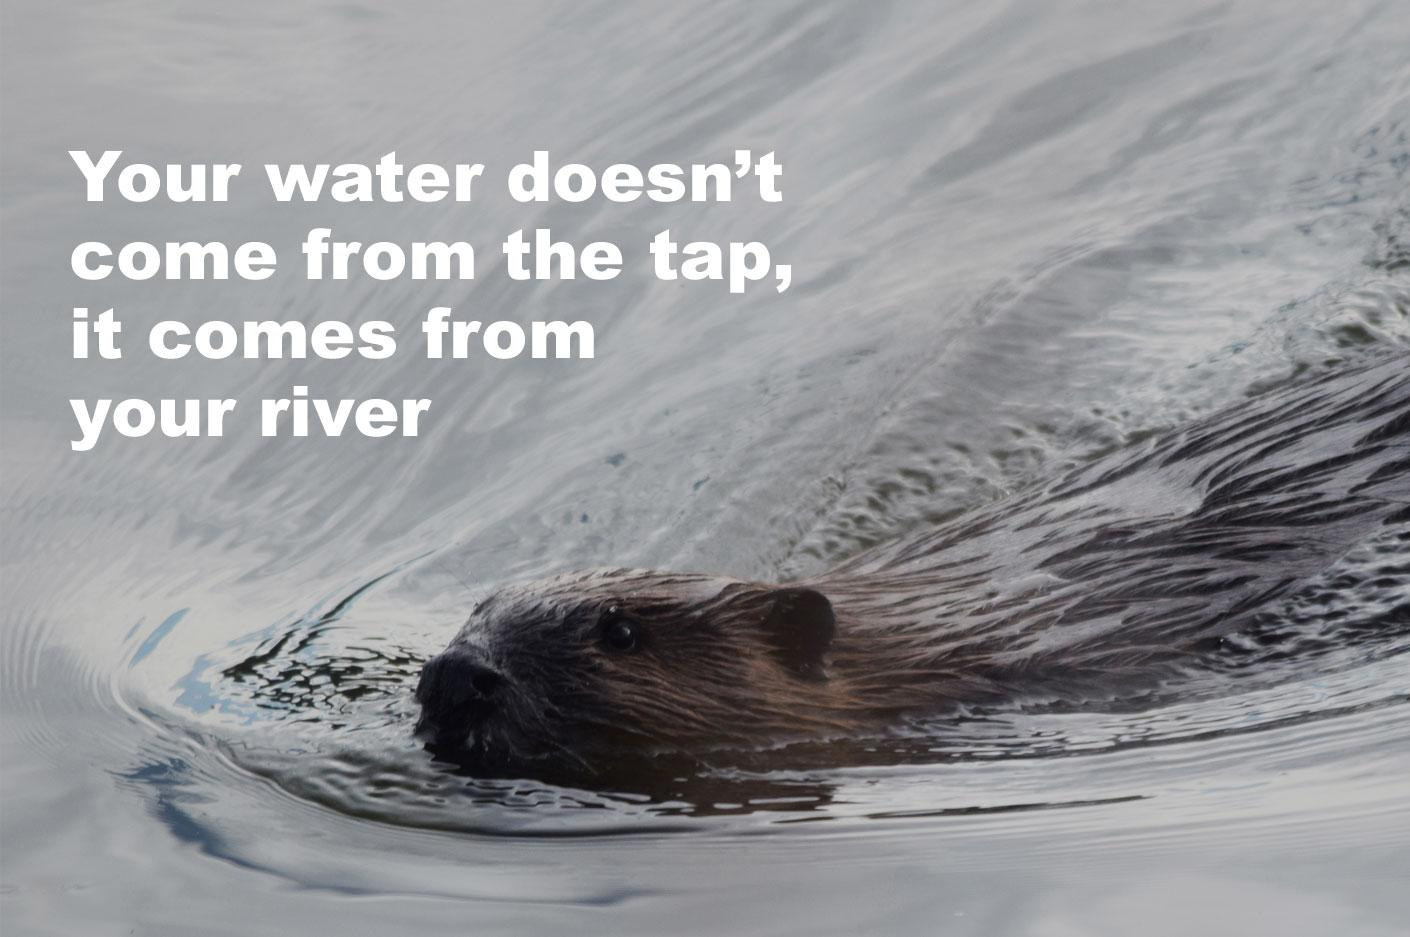 Your Water Doesn't Comes From The Tap